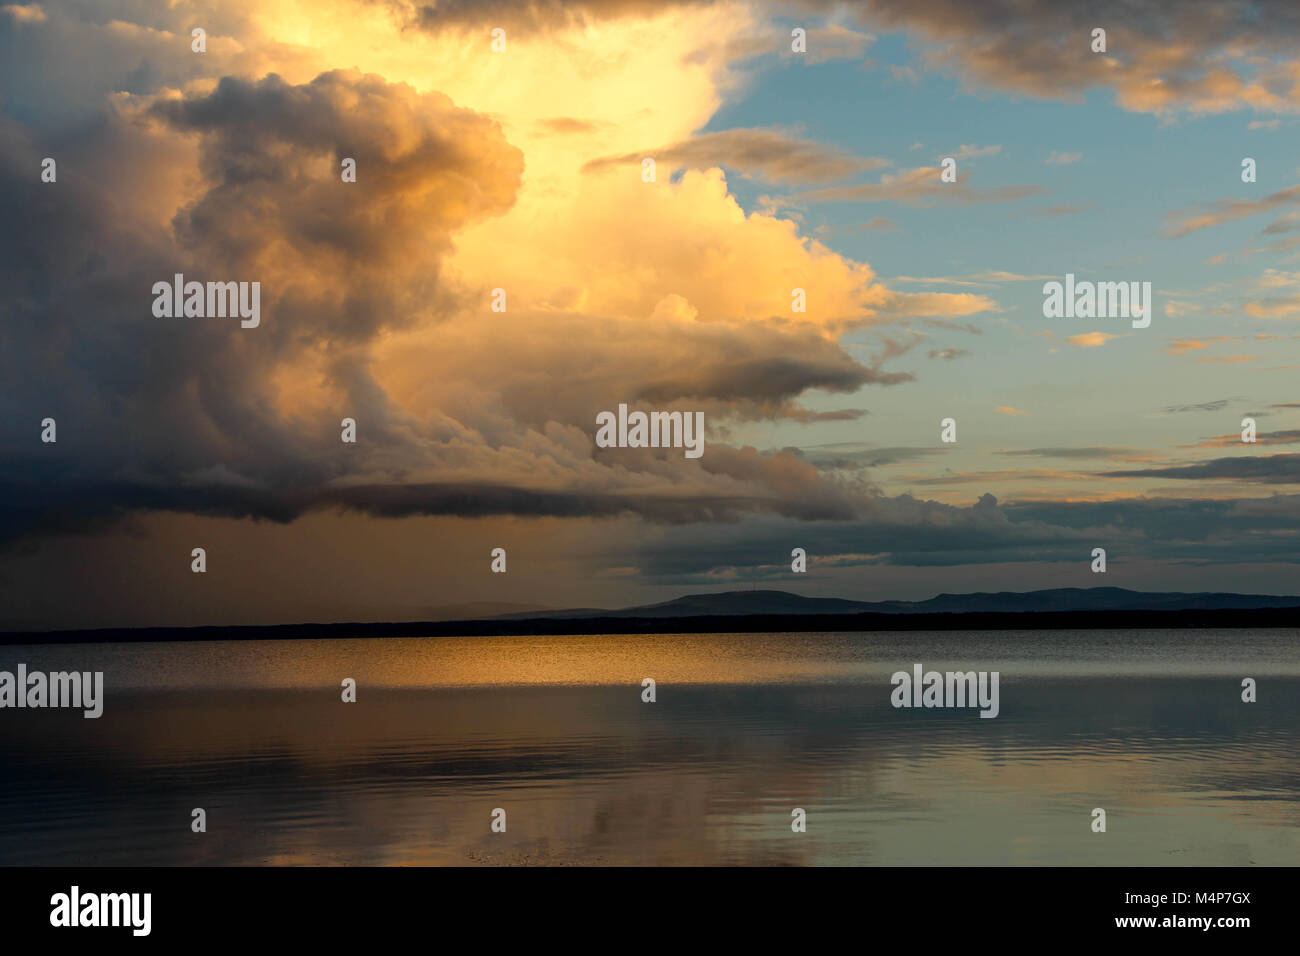 Sunset with colorful clouds over Orsa lake, Orsa, Dalarna, Sweden. - Stock Image